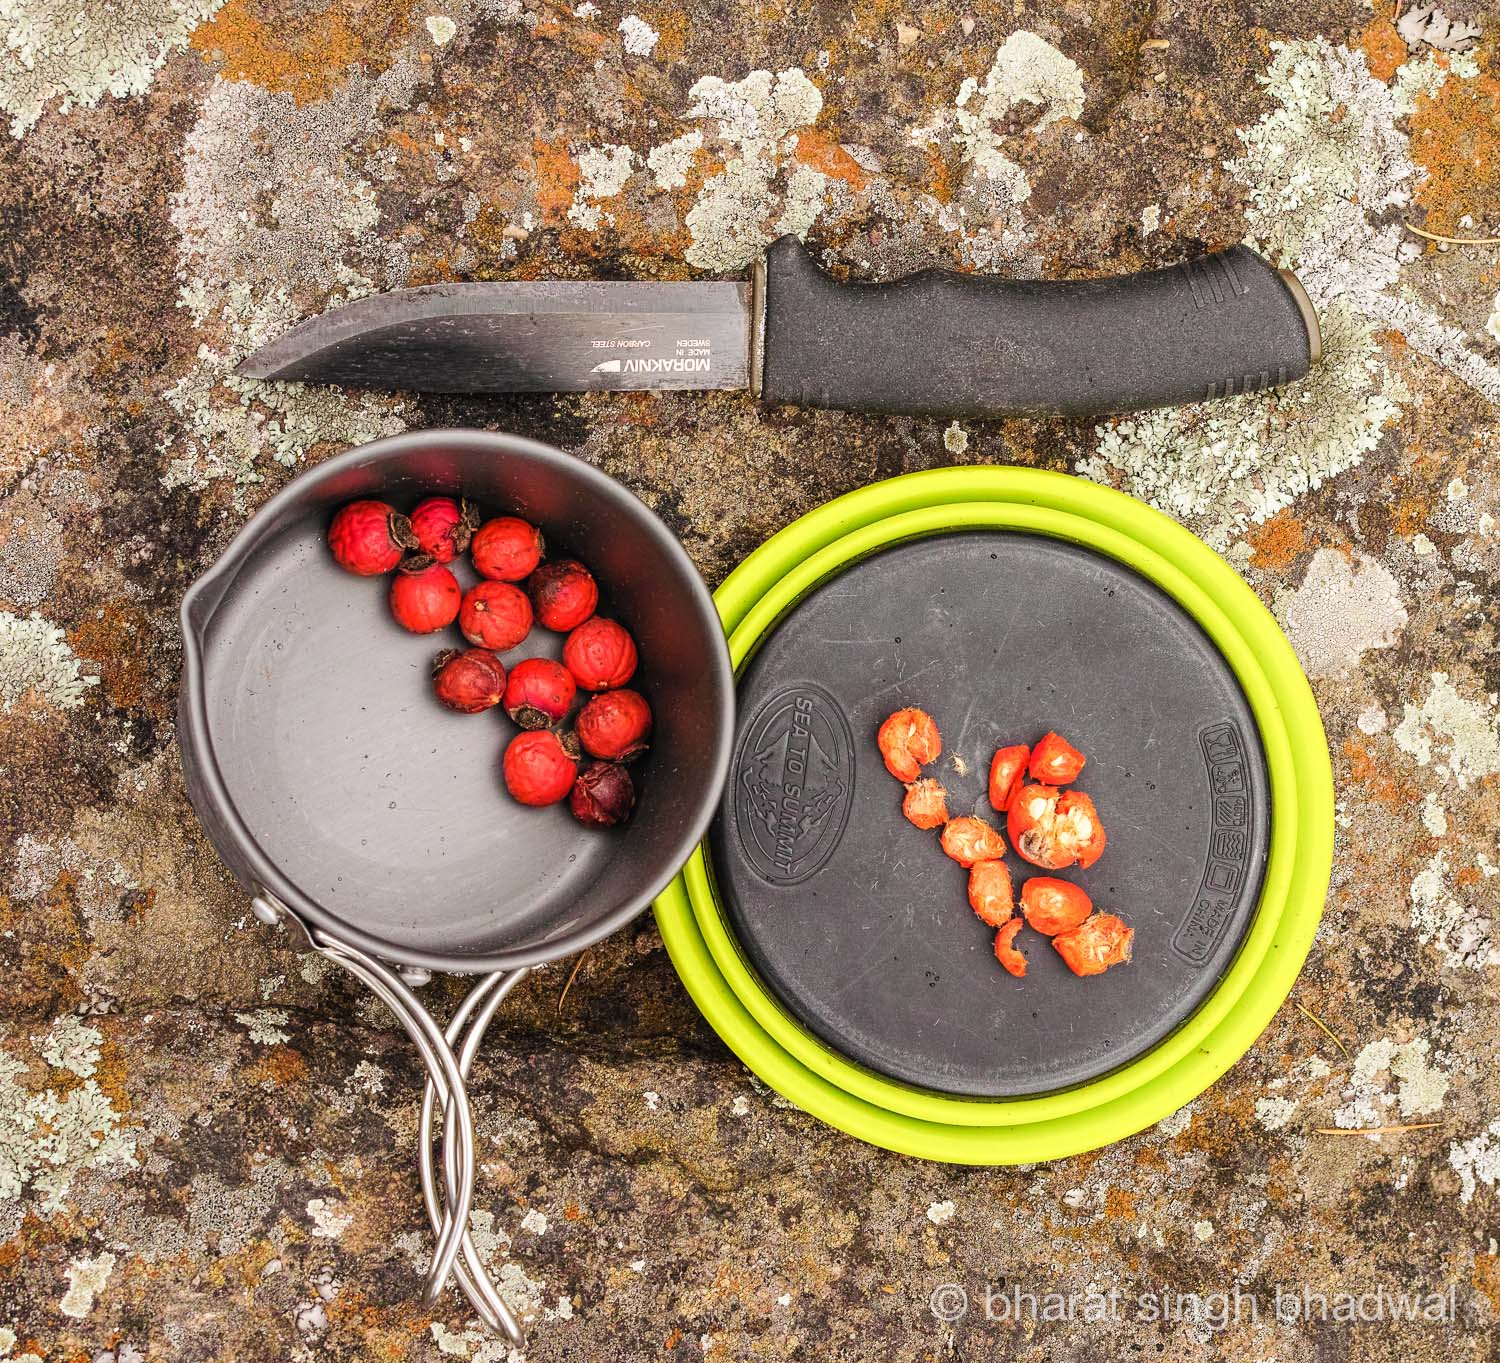 Chopping rose hips on a Sea to Summit bowl that doubles as a chopping board. Very Handy.